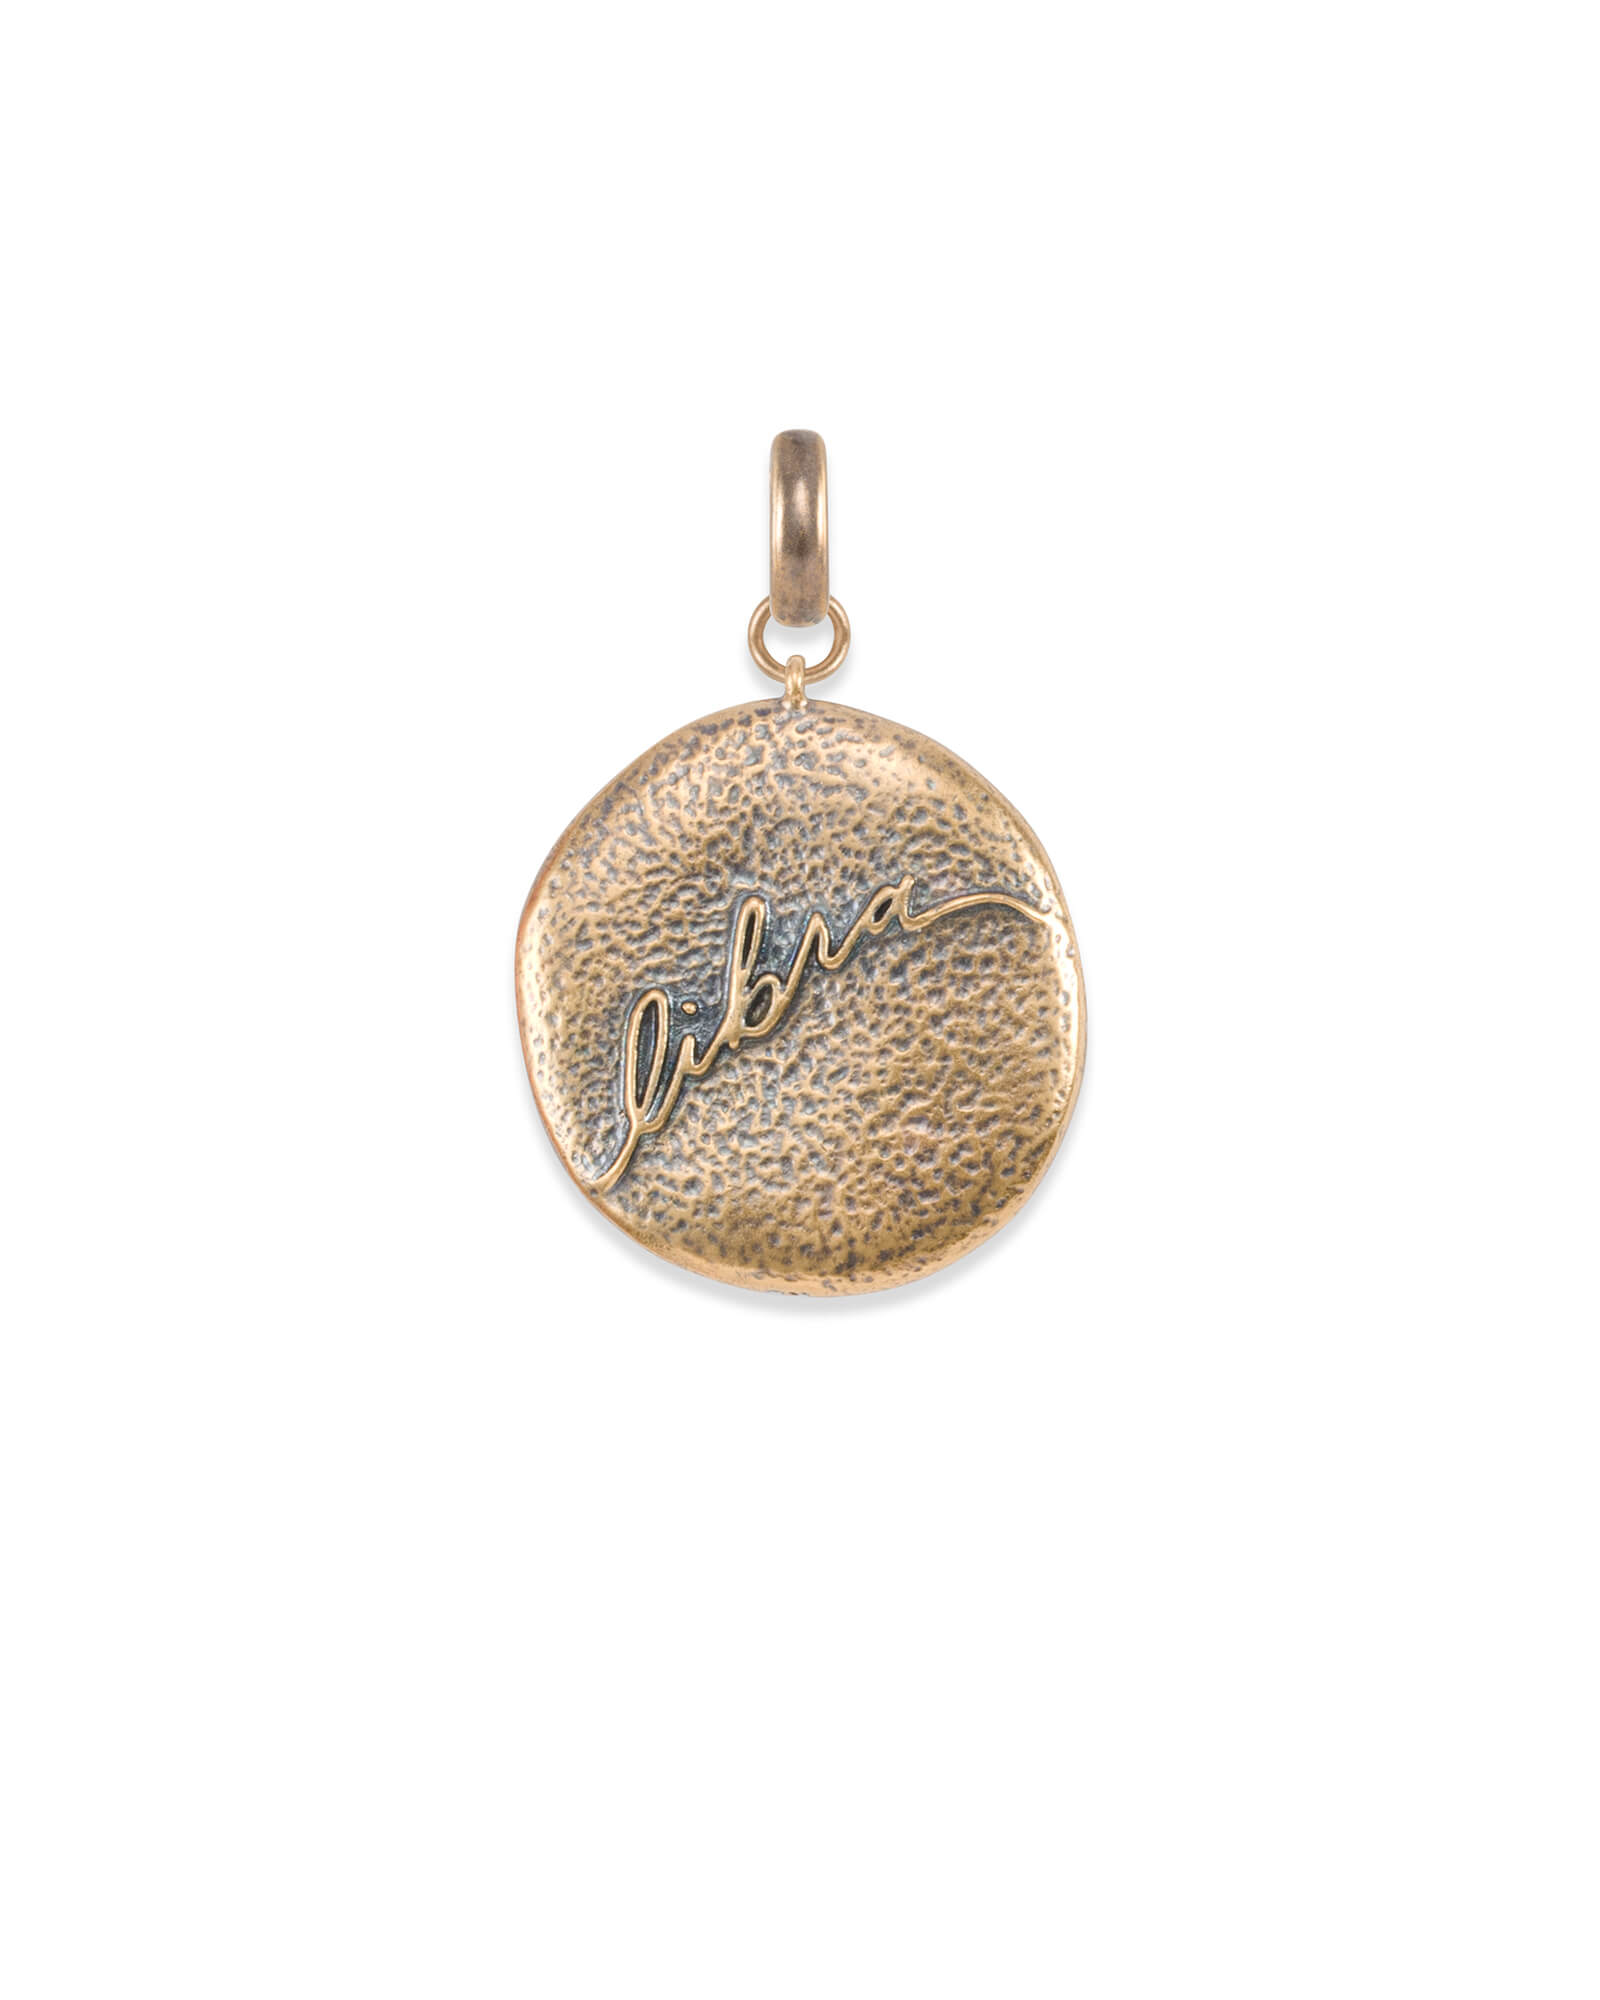 Libra Coin Charm in Vintage Gold